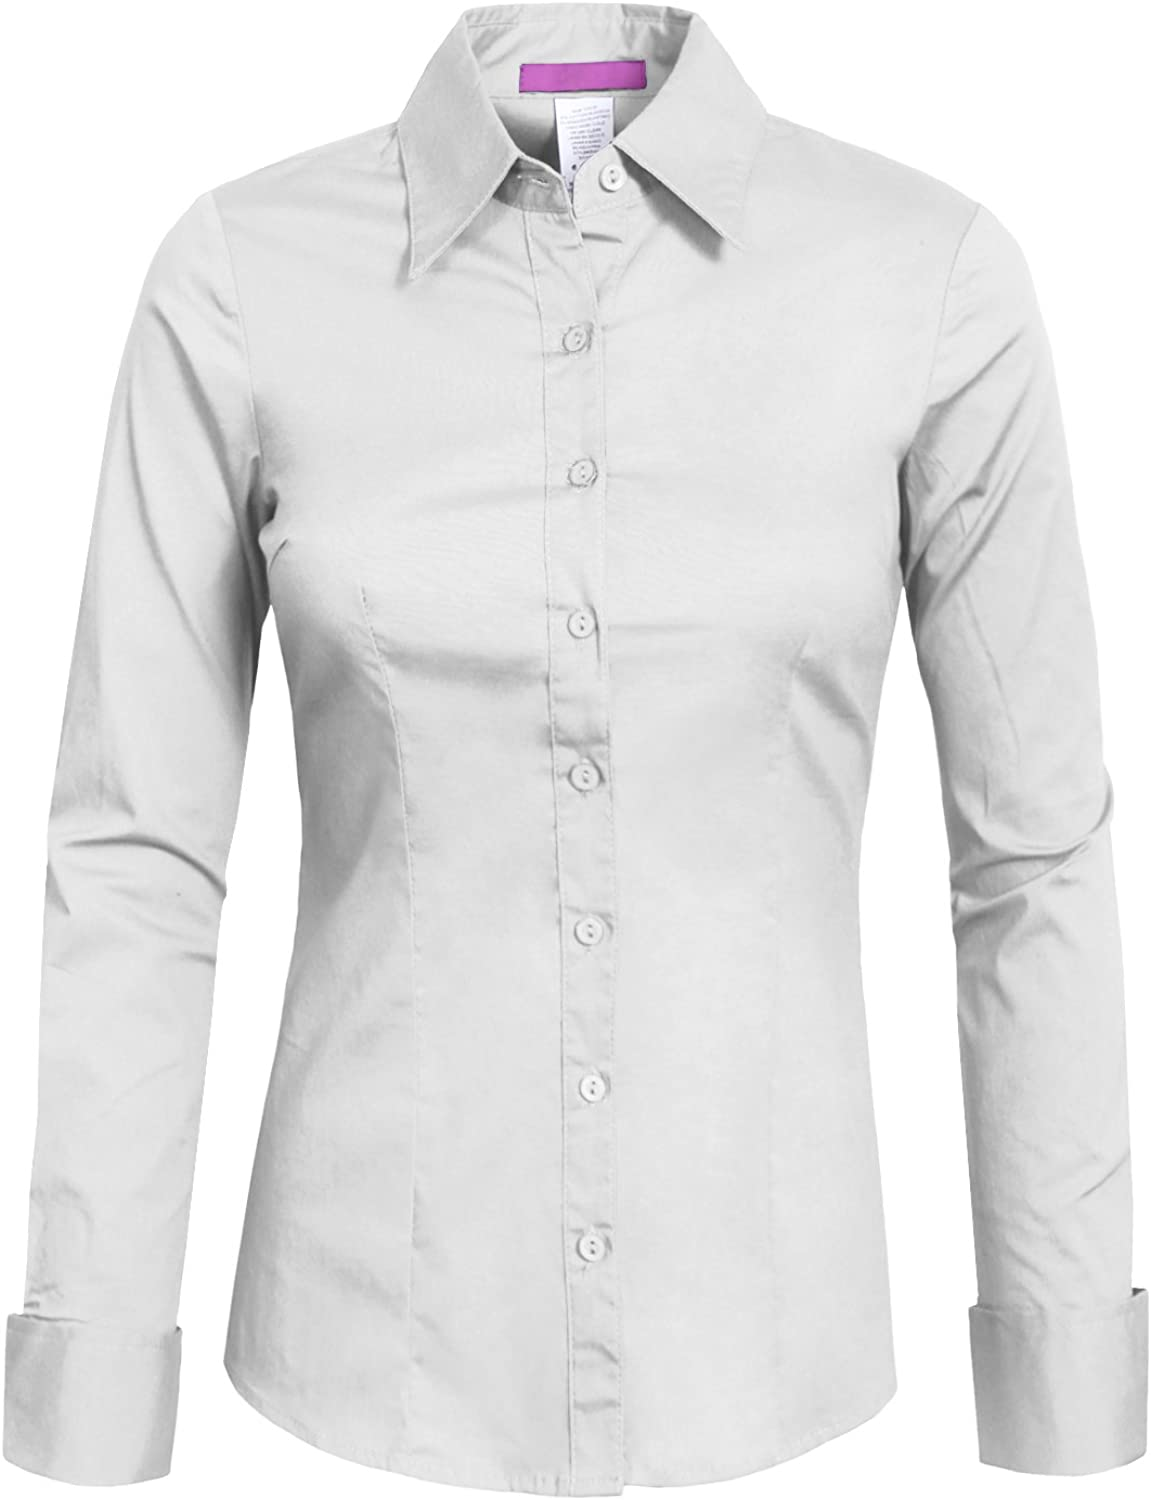 NE PEOPLE Womens Basic Solid Work Office Tailored Long Sleeve Button Down Daily Shirt (S-3XL)